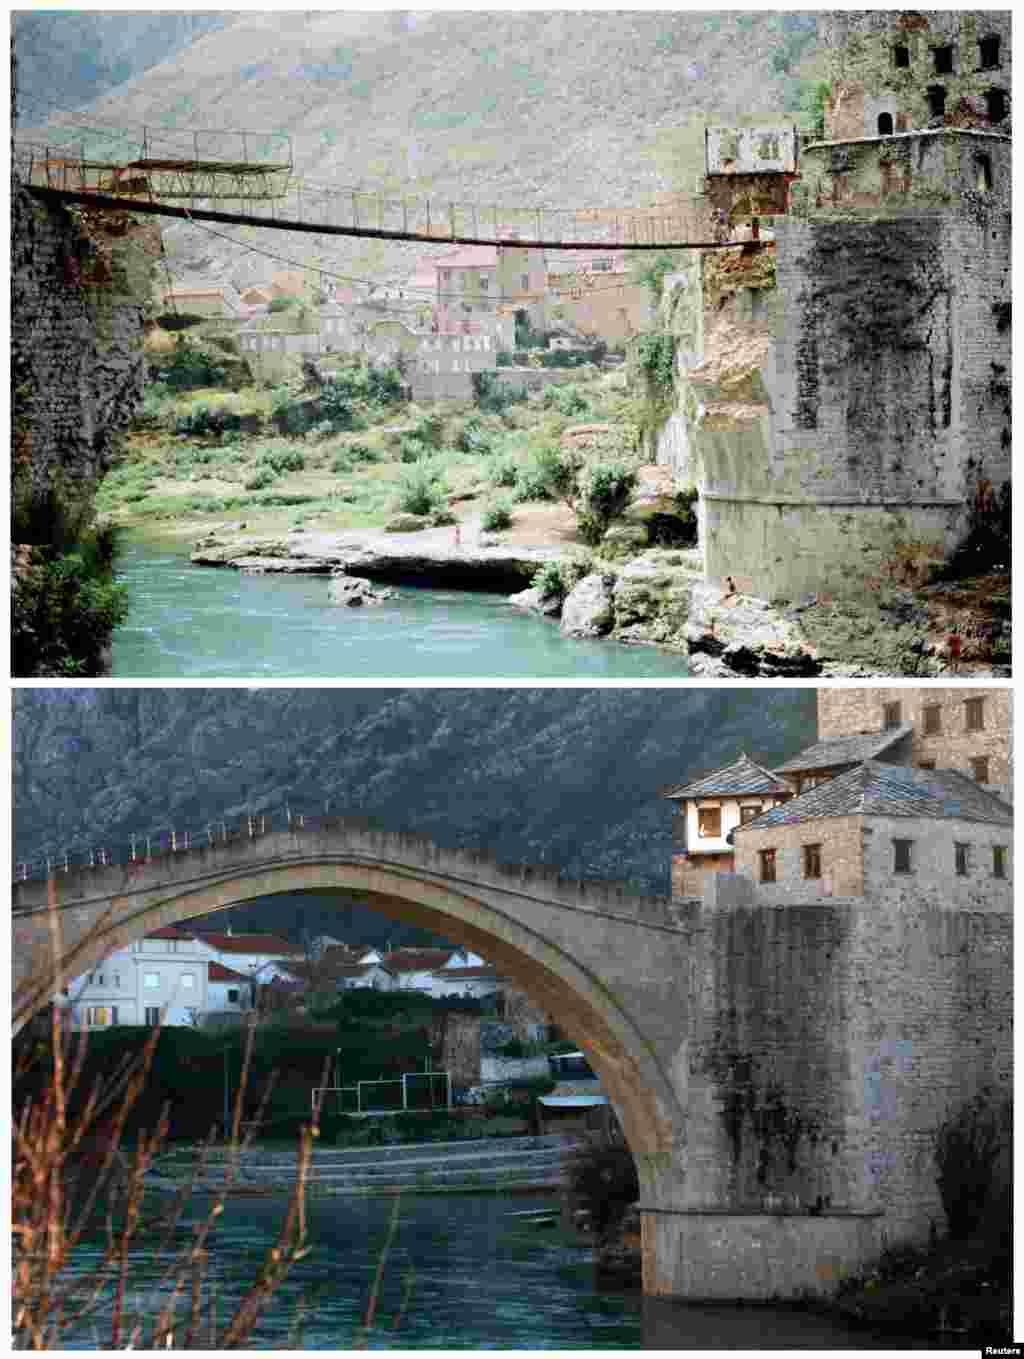 The makeshift bridge that replaced the destroyed Old Bridge, and the rebuilt structure in 2013.